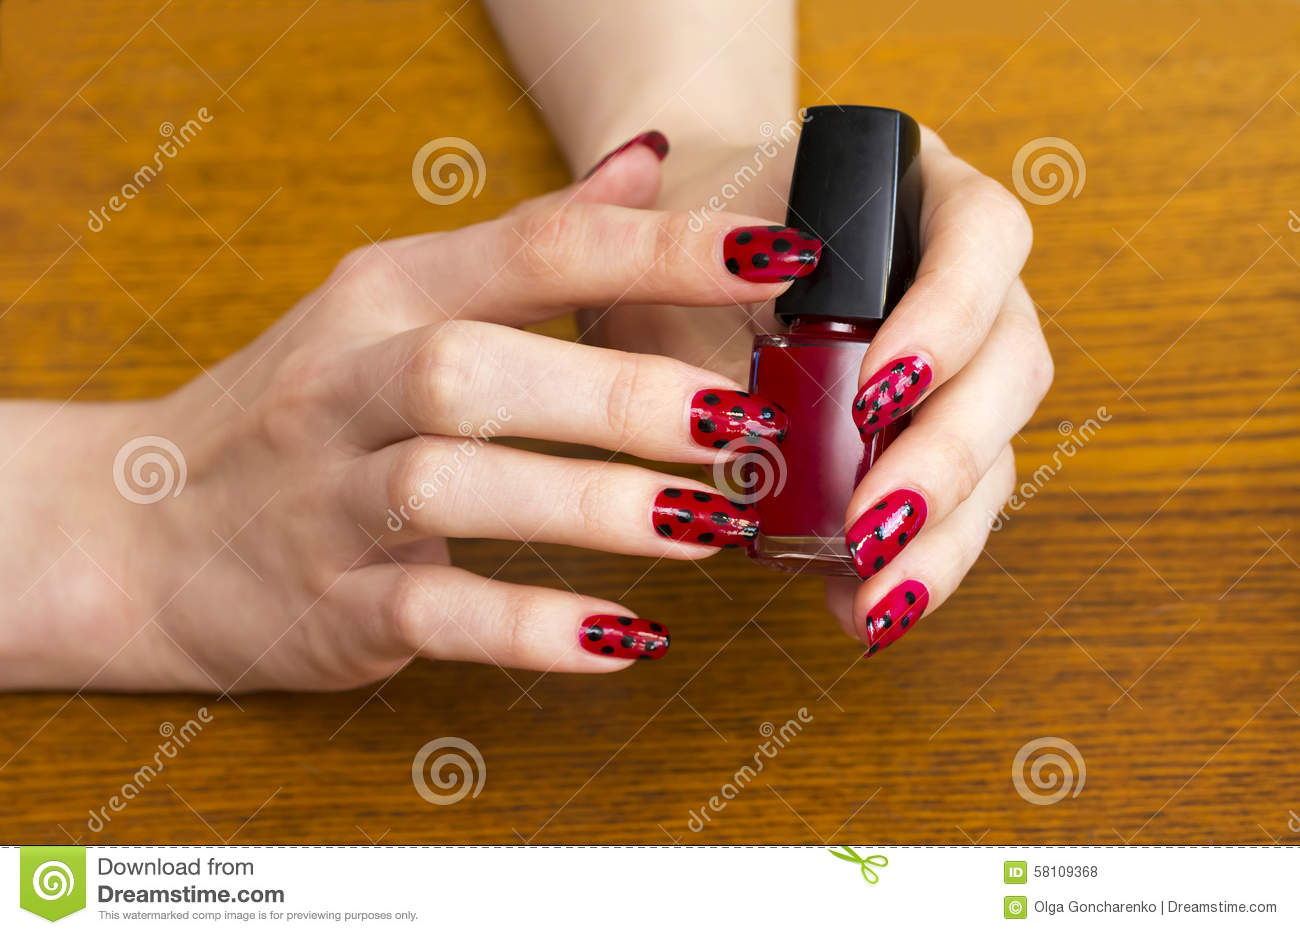 Download Hands Girls Holding A Bottle Of Red Nail Polish Stock Photo